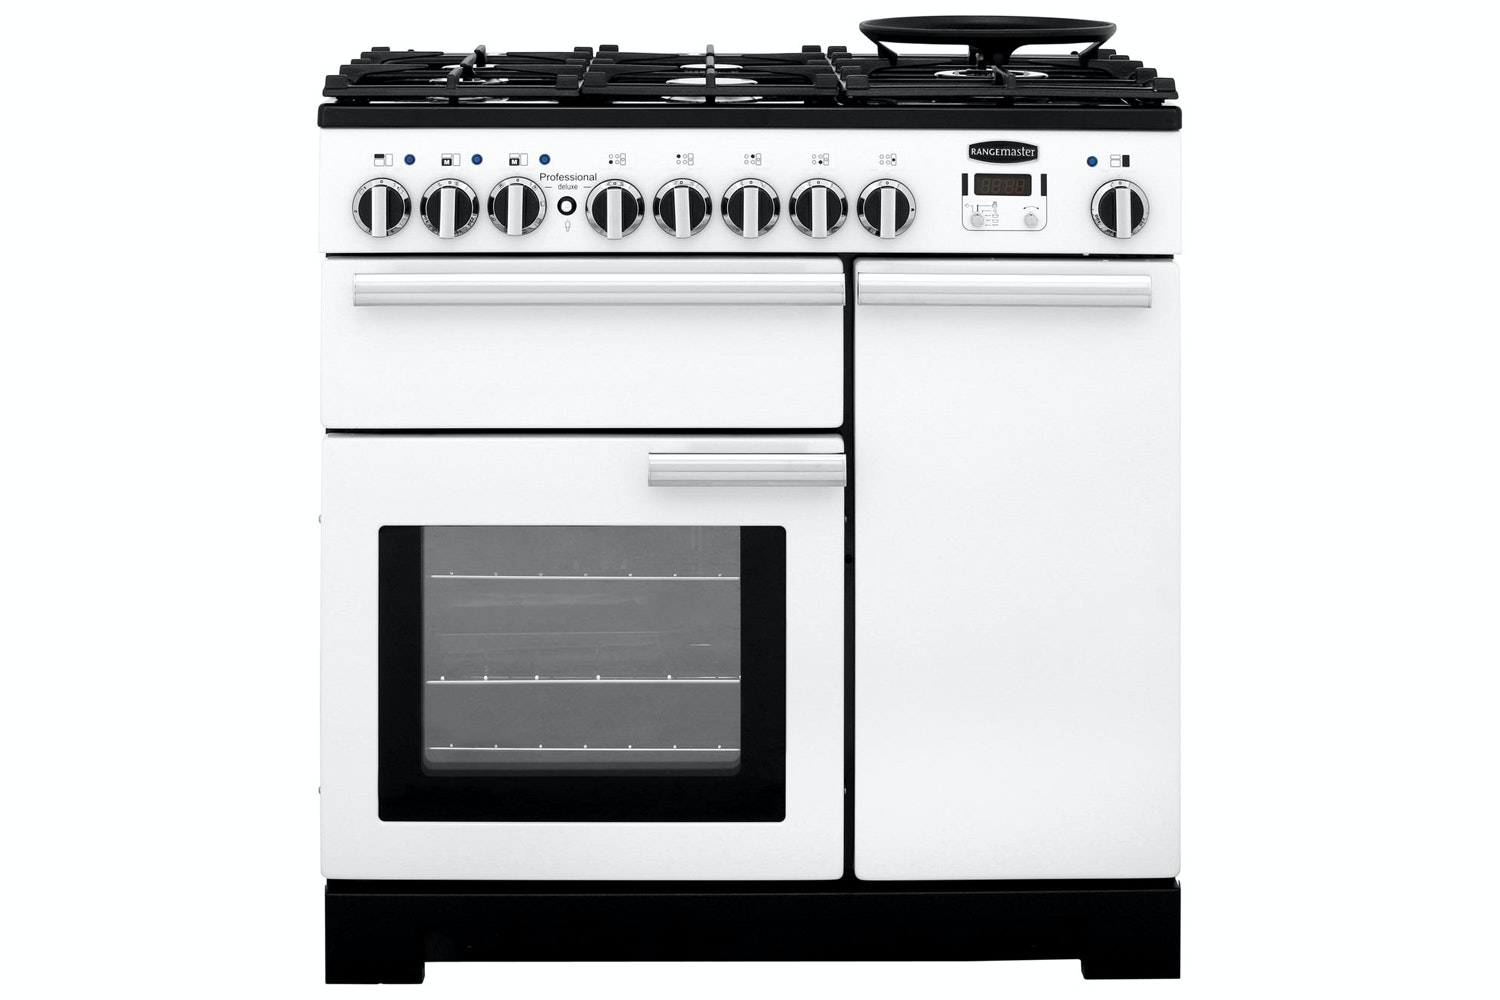 Rangemaster Professional Deluxe 90cm Dual Fuel Range Cooker | PDL90DFFWH/C | White